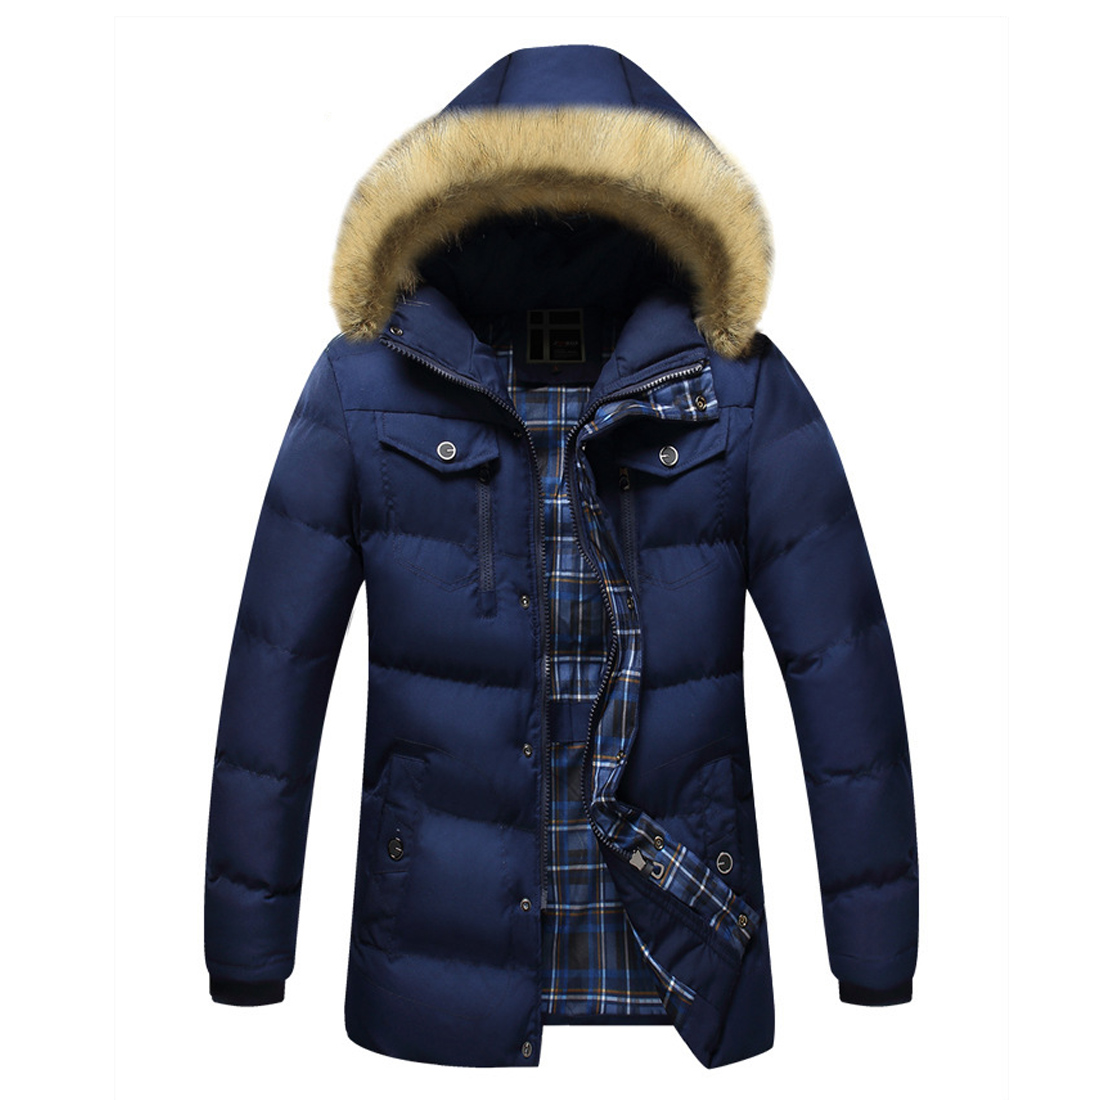 2017 Men Down Jacket Winter Warm Collar Fur Trim Hood Coat Outwear Puffer Down Cotton Long Jacket Clothes Thick Canada Cheap Top 2017 men down jacket winter warm collar fur trim hood coat outwear puffer down cotton long jacket clothes thick canada cheap